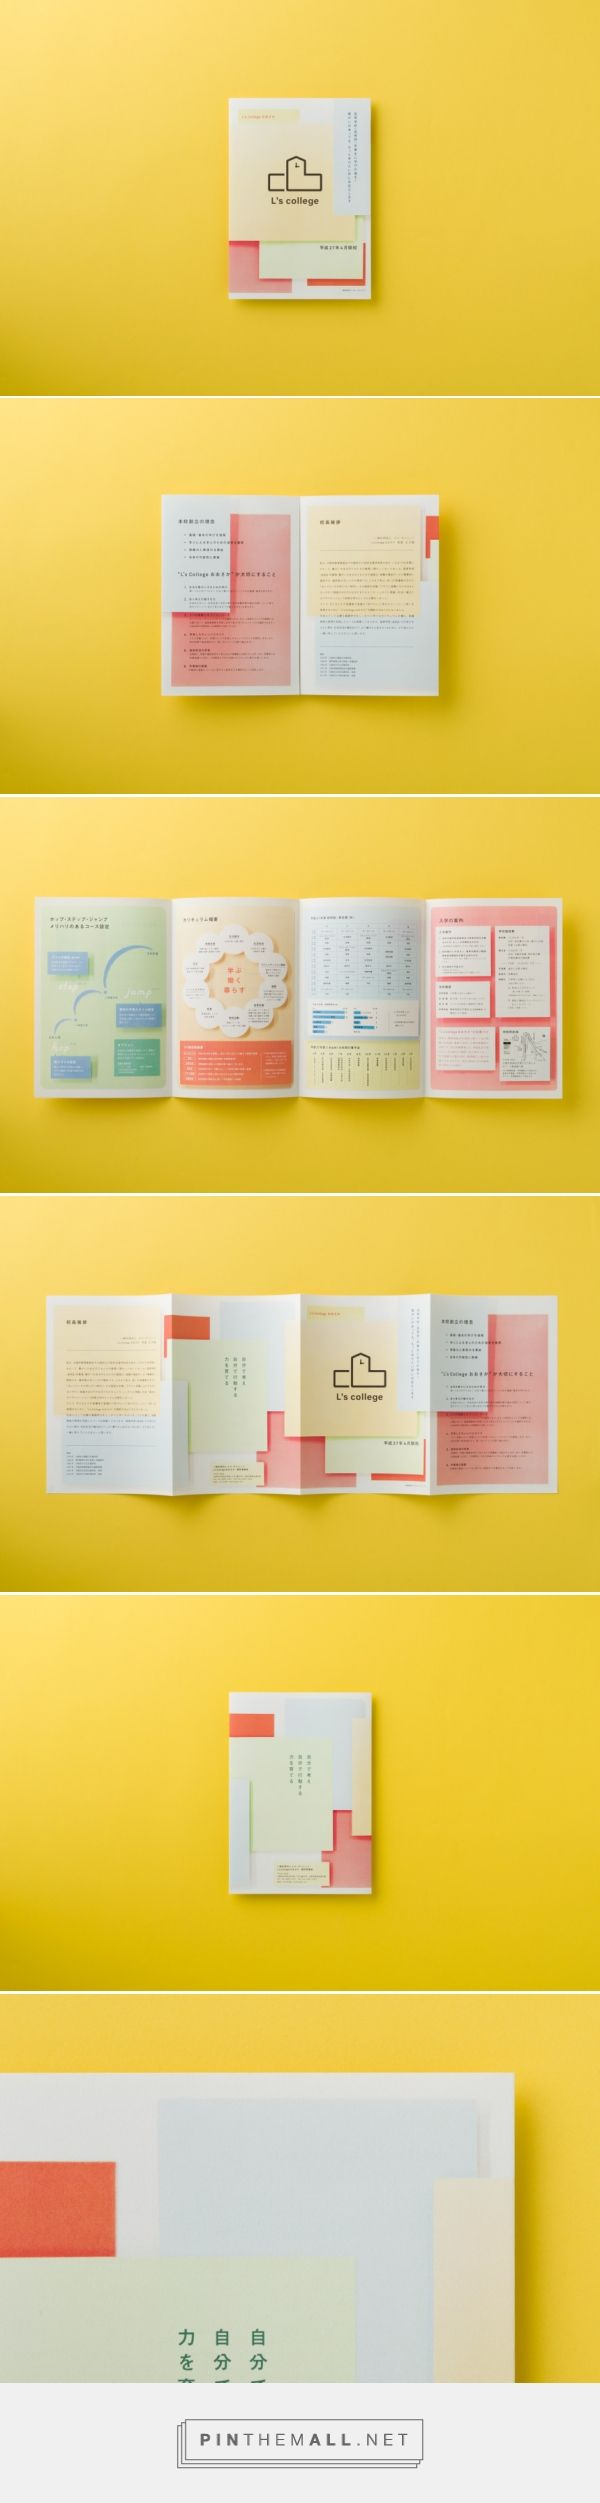 L's college : UMA / design farm... - a grouped images picture - Pin Them All